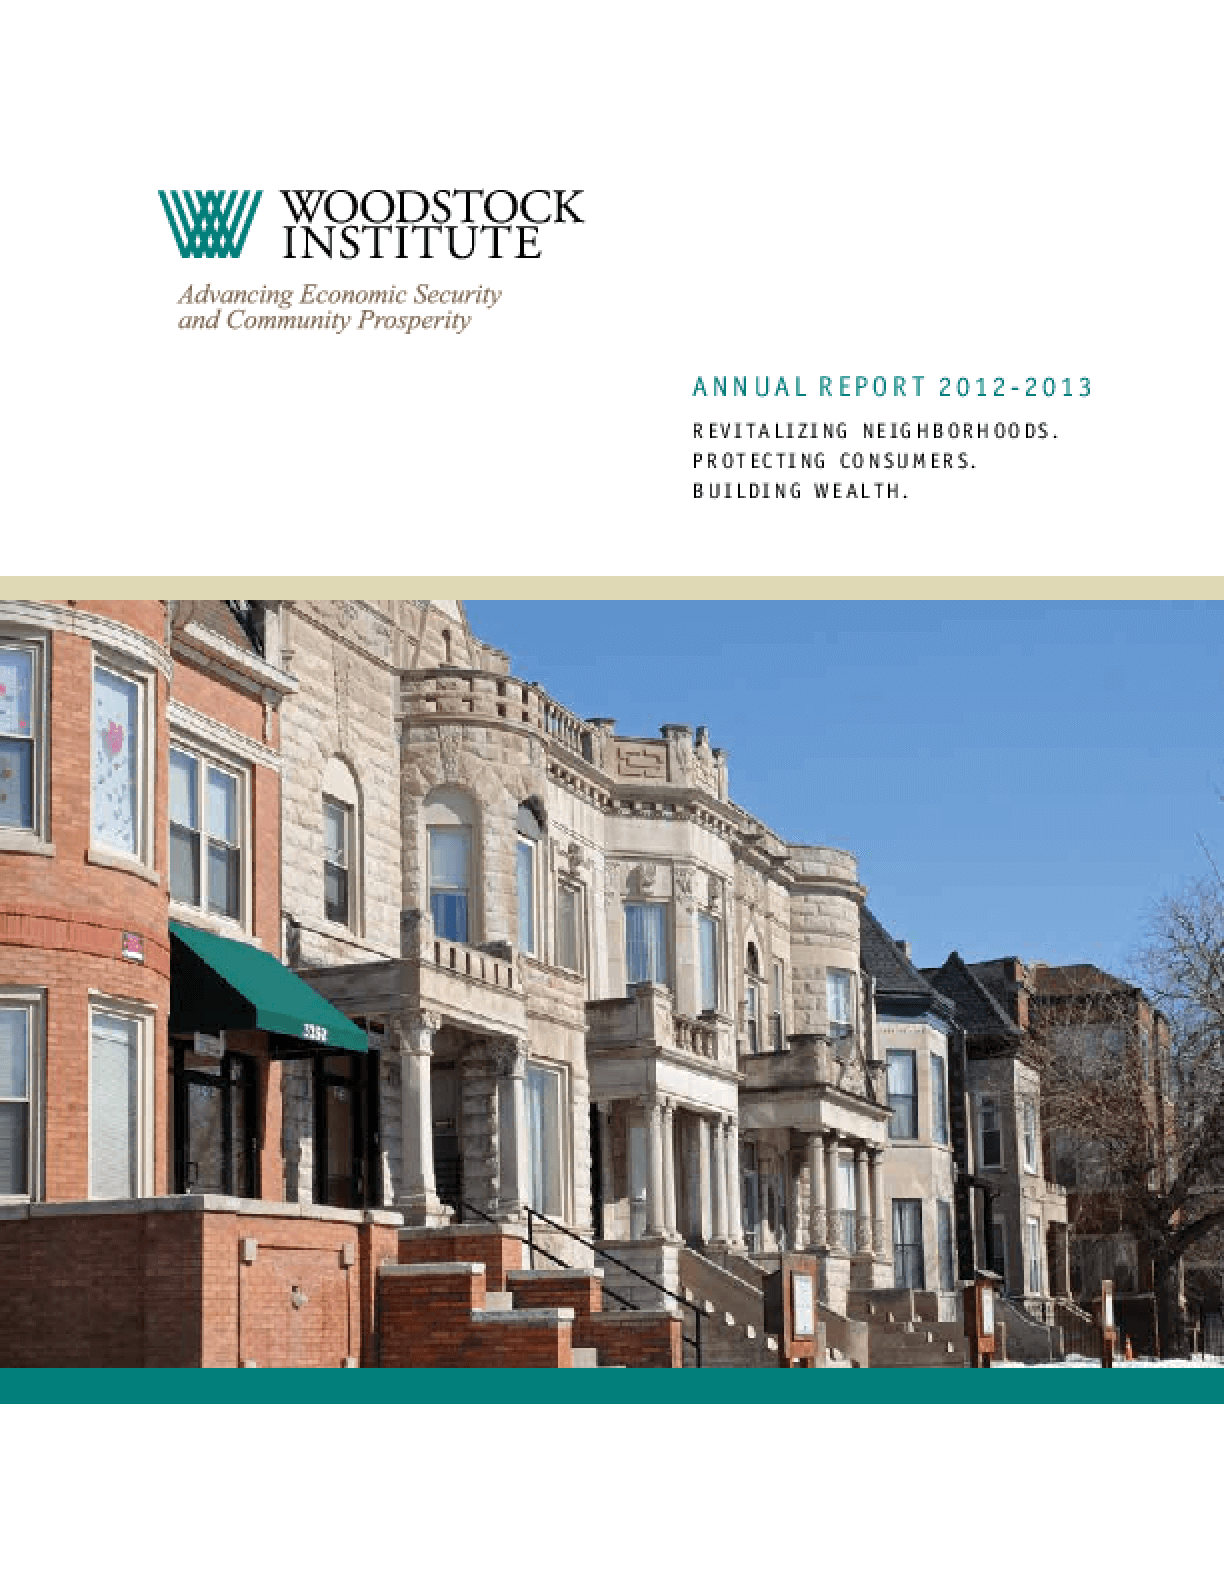 Woodstock Institute 2012-2013 Annual Report: Revitalizing Neighborhoods, Protecting Consumers, Building Wealth